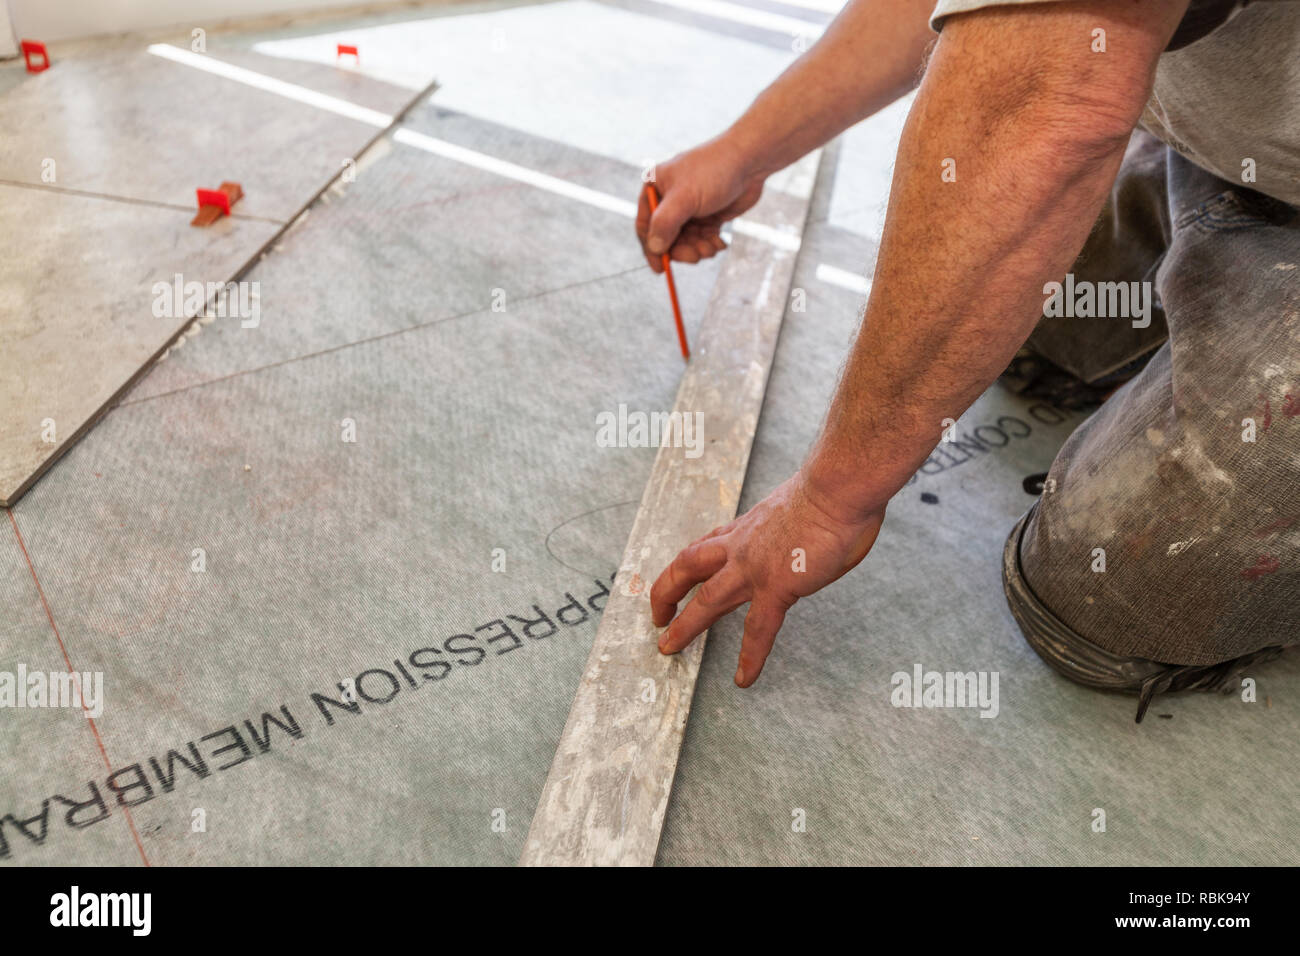 Man Using Marking Pencil To Draw Tile Grid On Floor - Stock Image